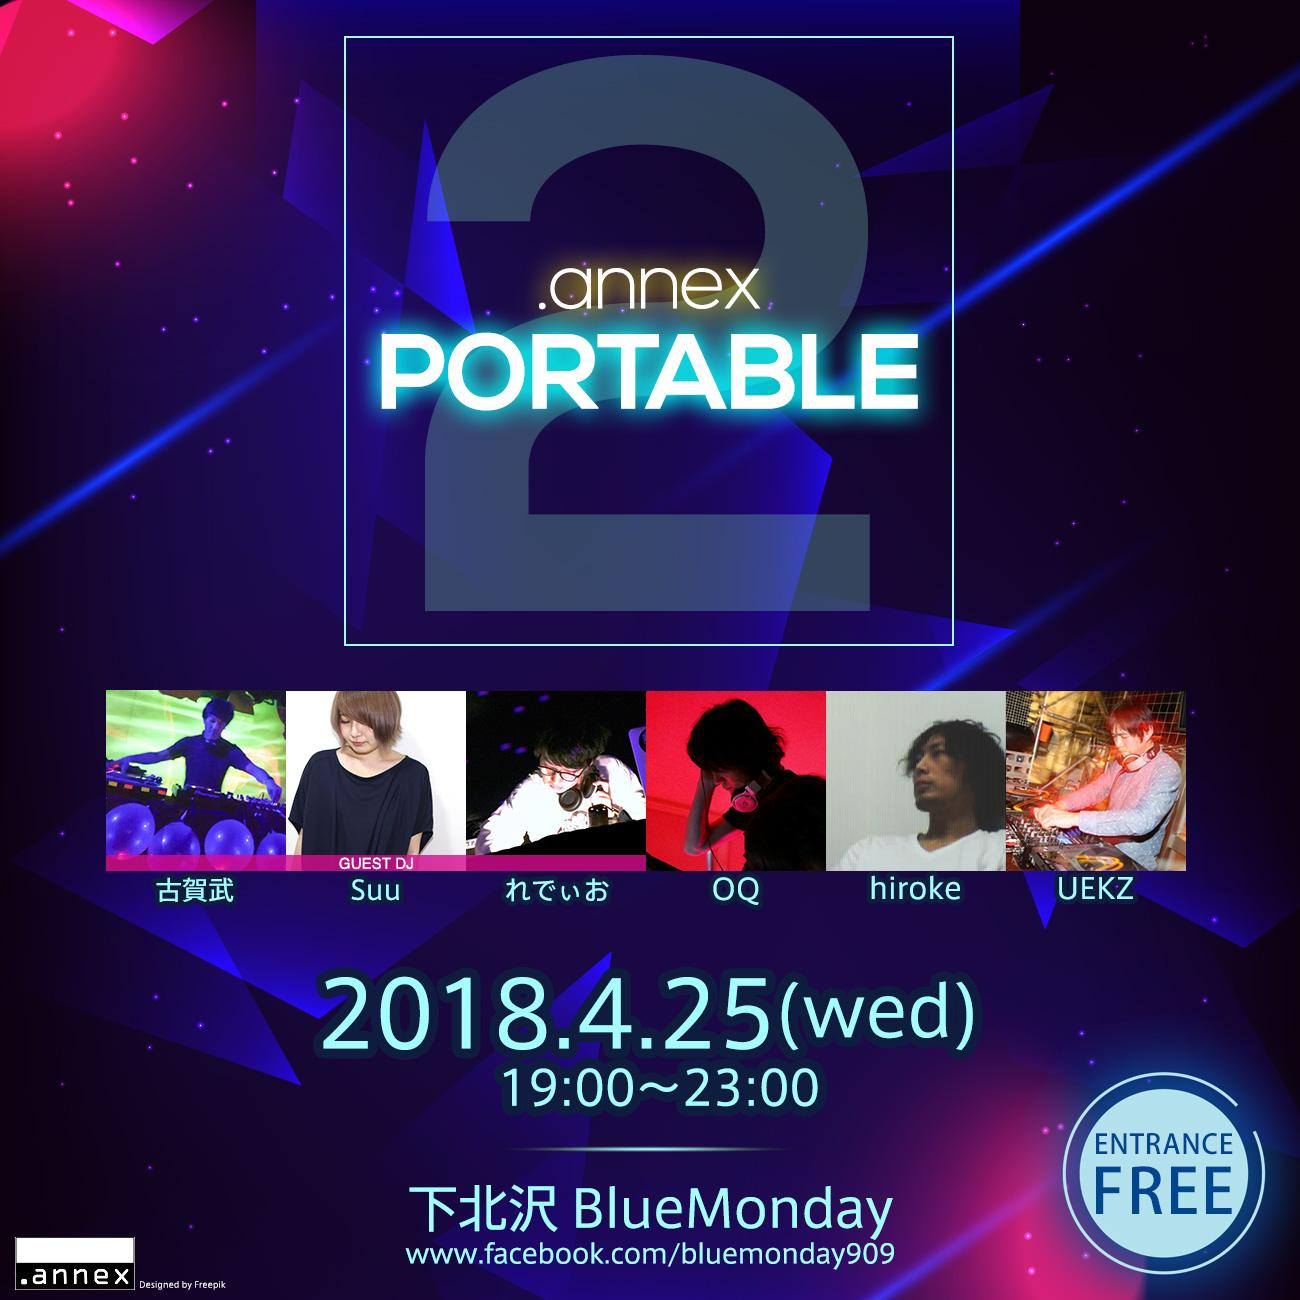 .annex PORTABLE 2 flyer